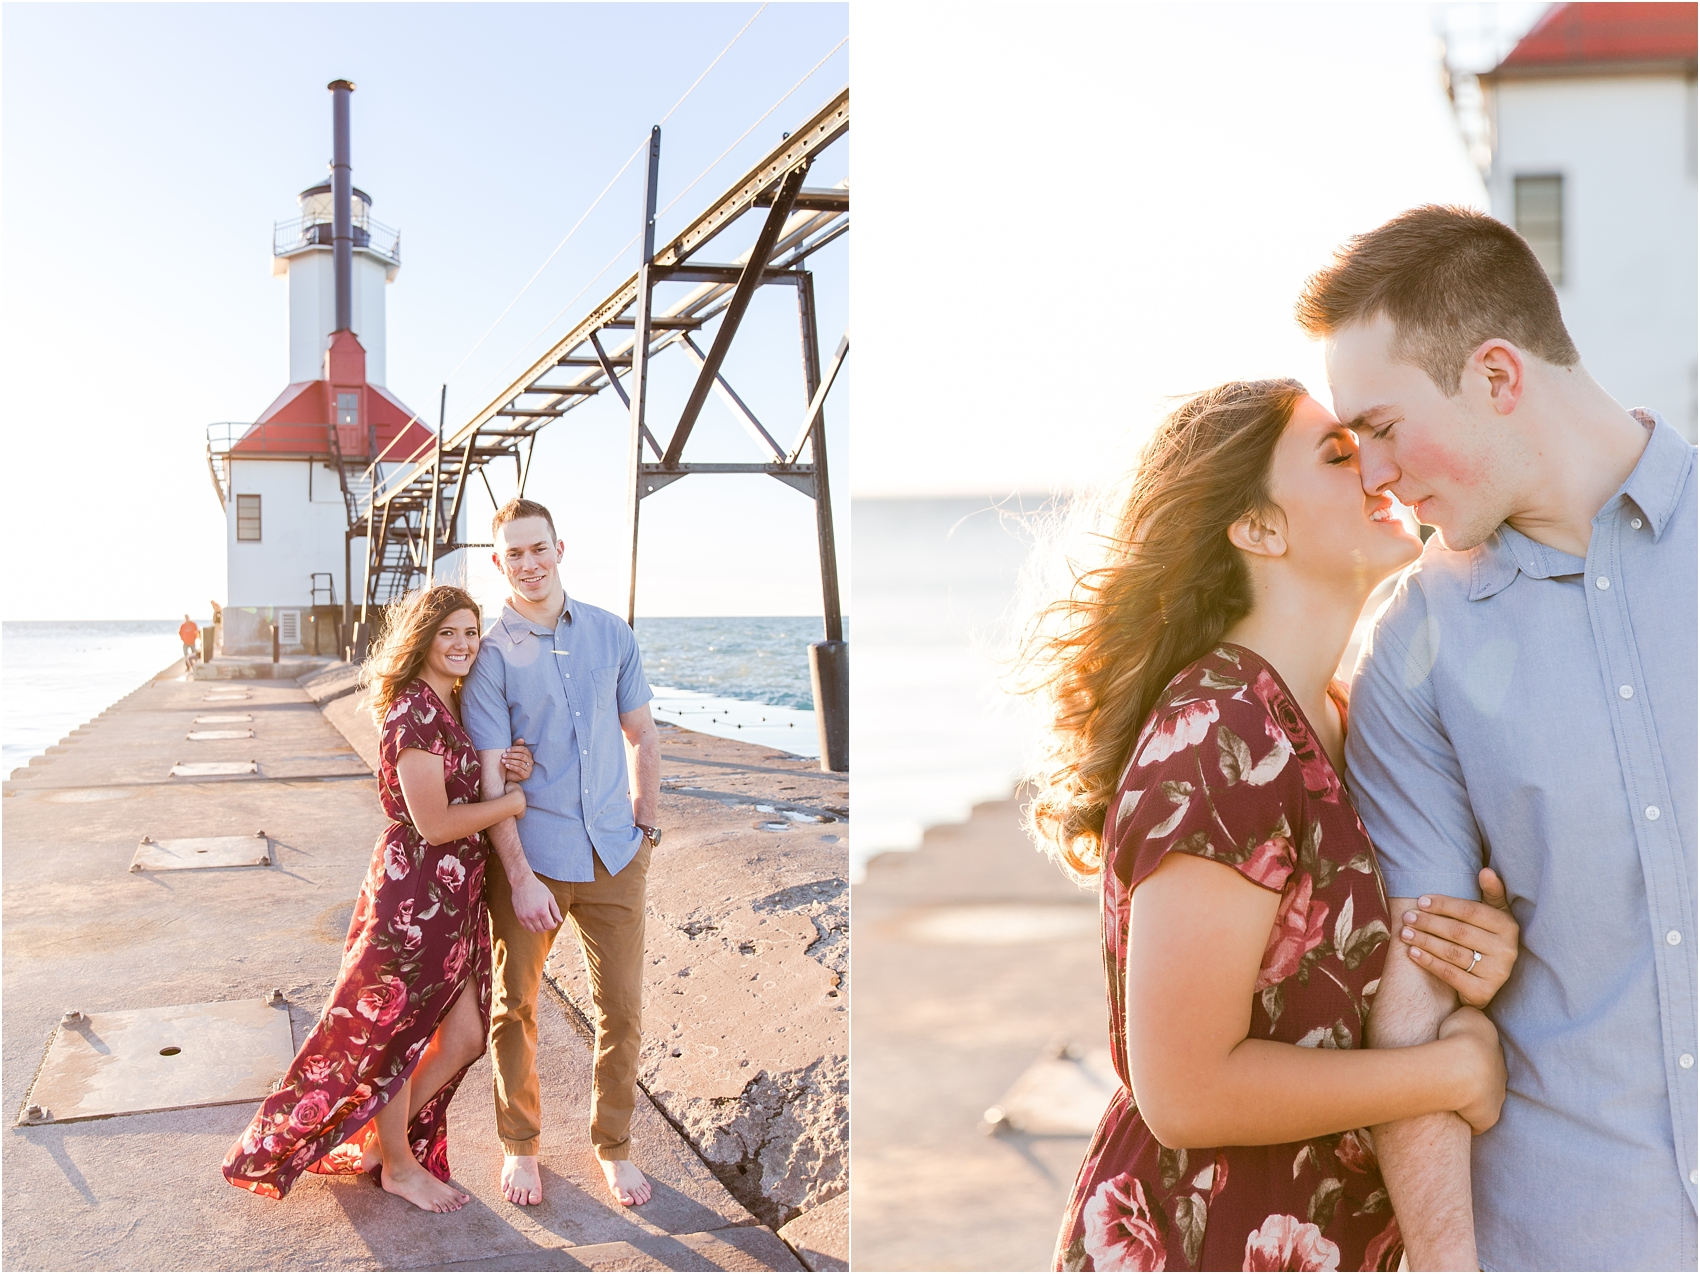 candid-end-of-summer-sunset-engagement-photos-at-silver-beach-in-st-joseph-mi-by-courtney-carolyn-photography_0013.jpg